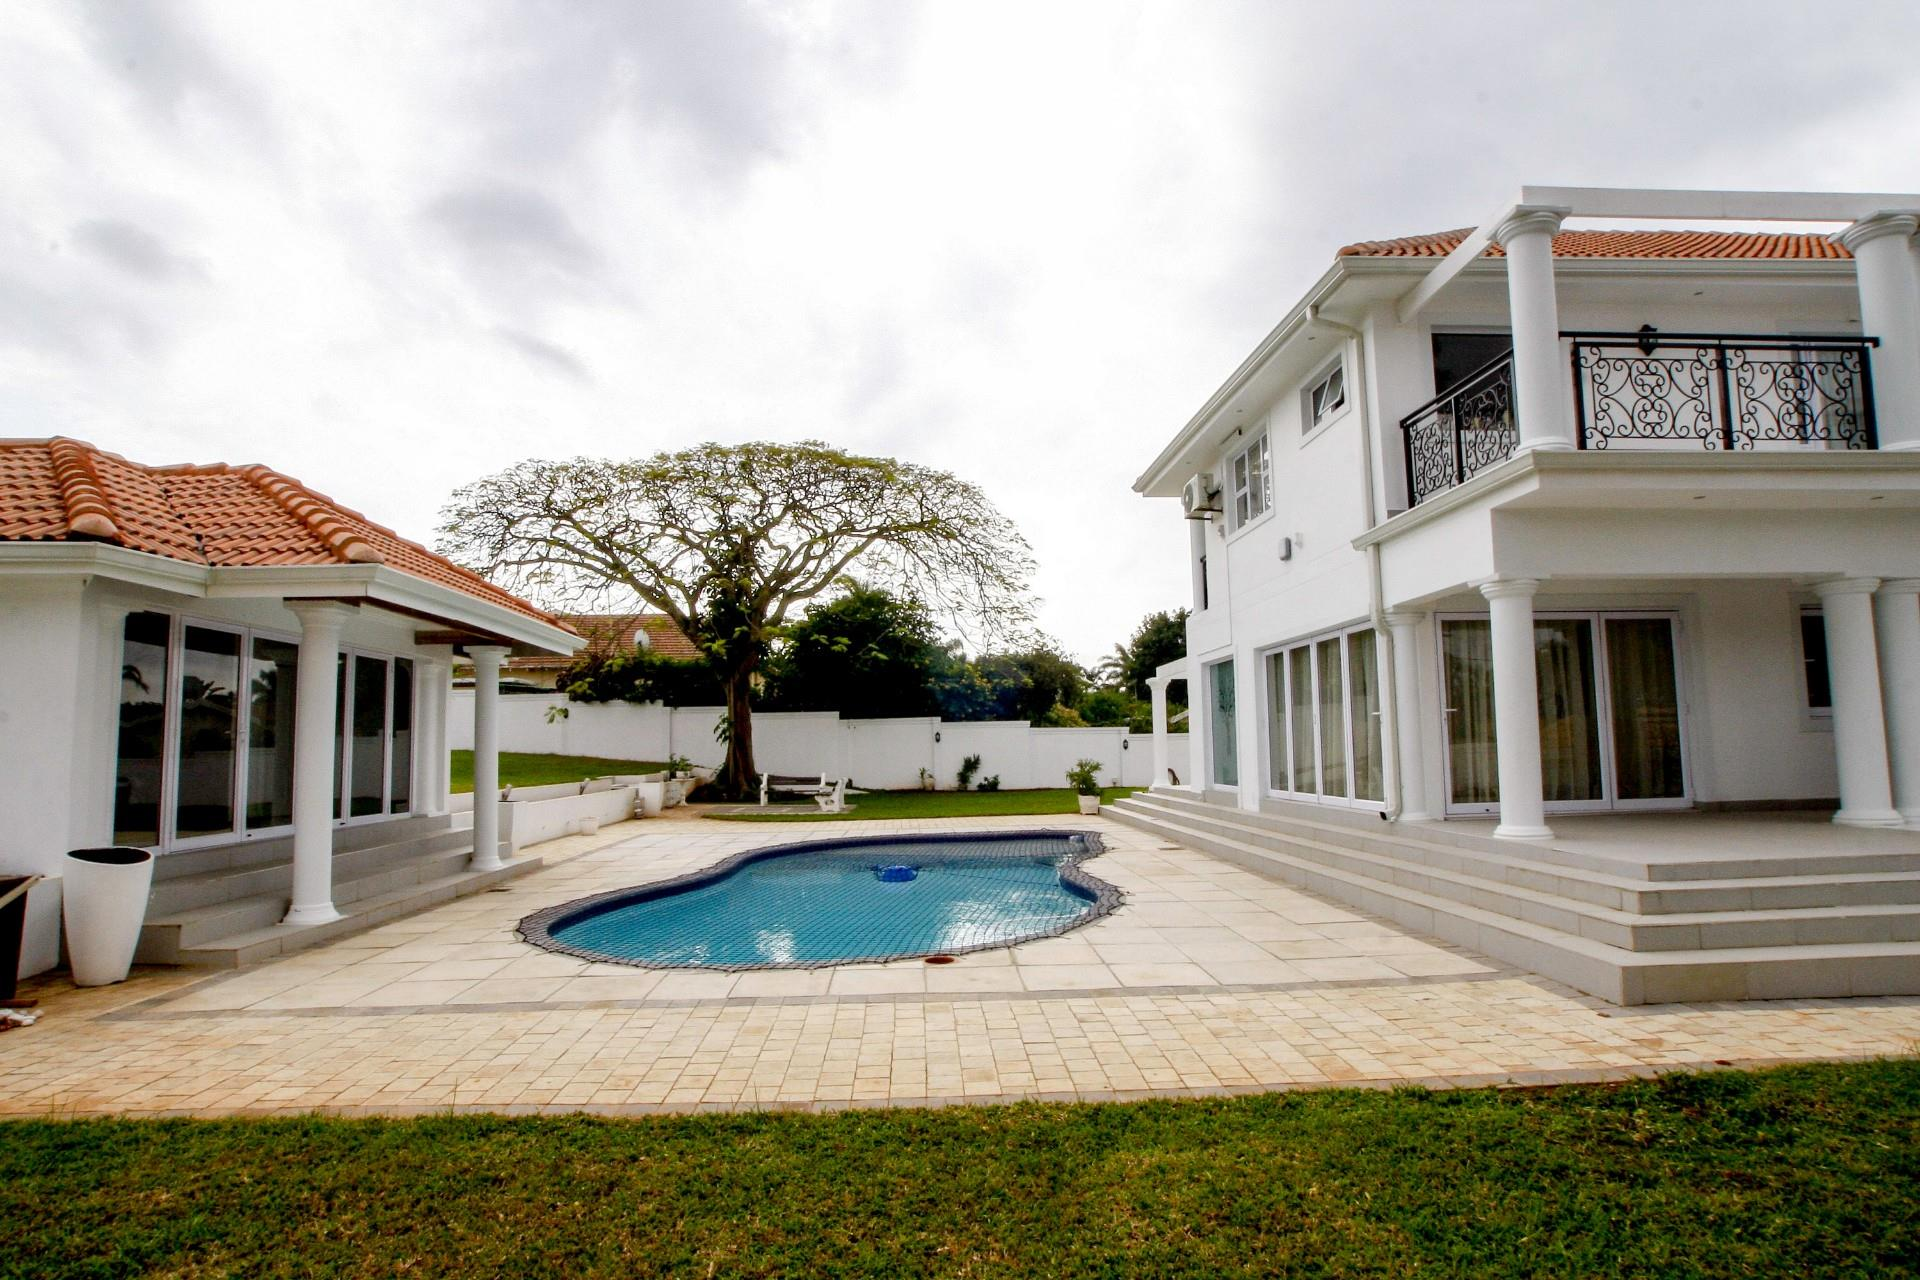 5 Bedroom House For Sale in Durban North | RE/MAX™ of